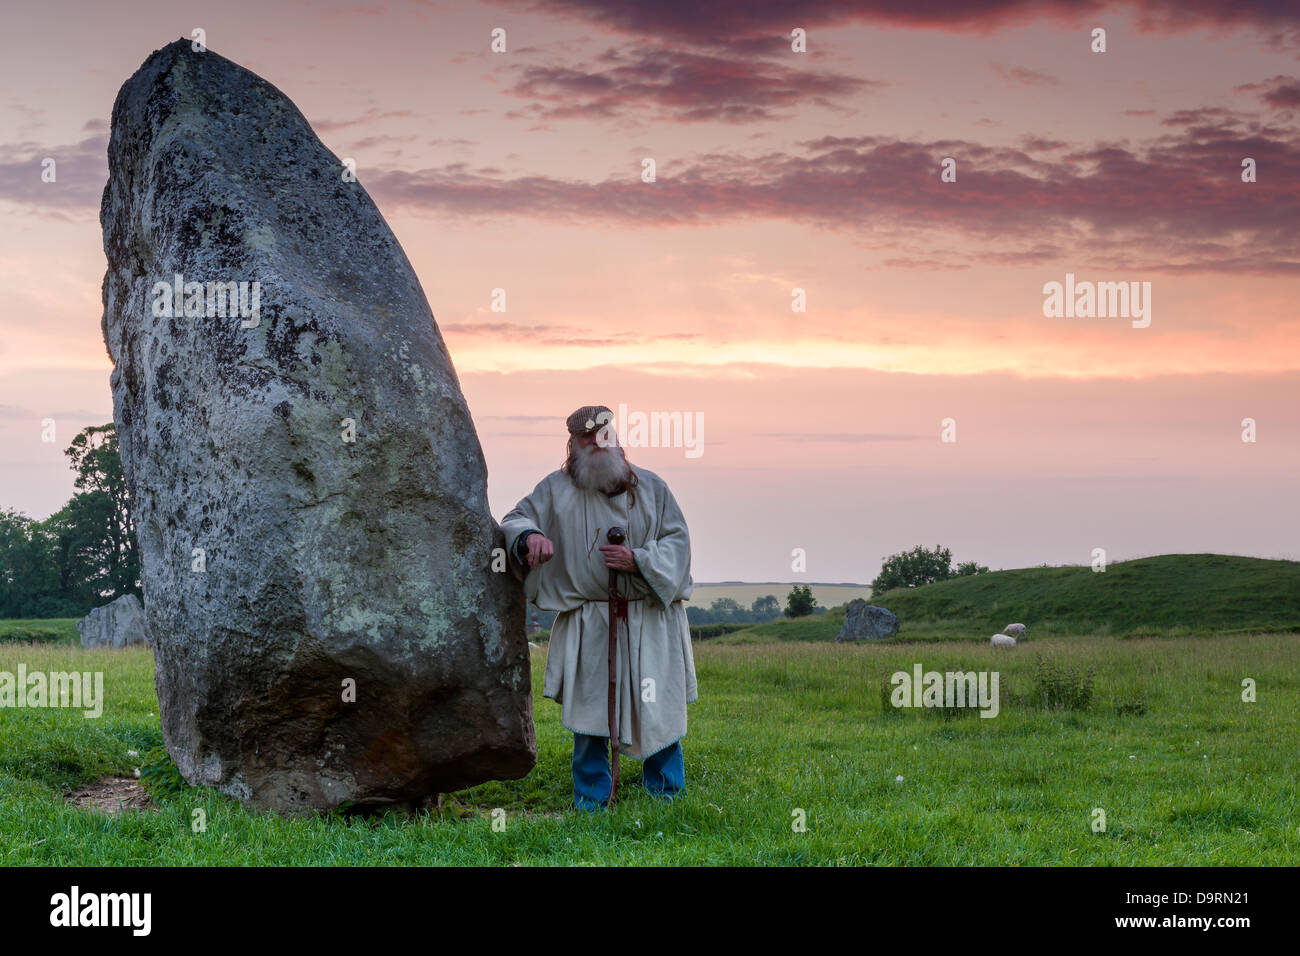 The 'Keeper of the Stones' - Stock Image